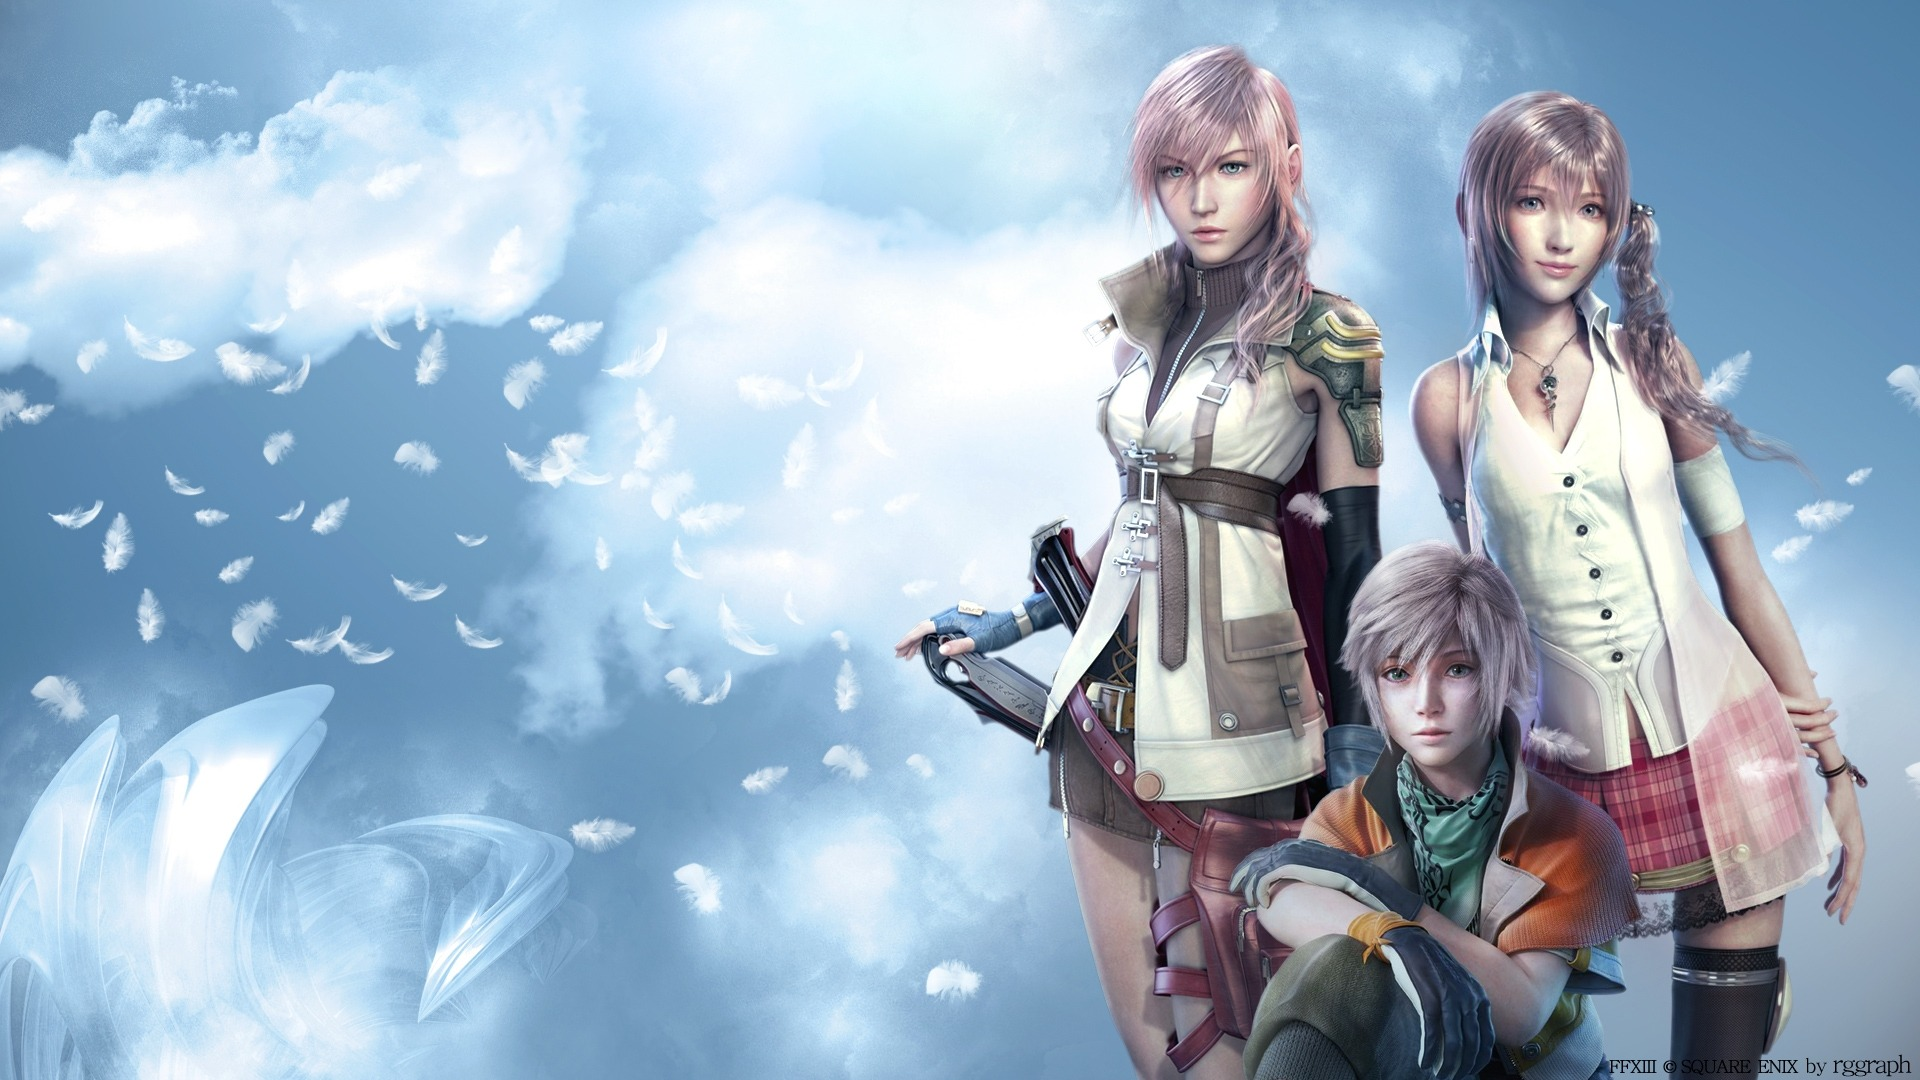 Final fantasy 13 breakthrough video game essay